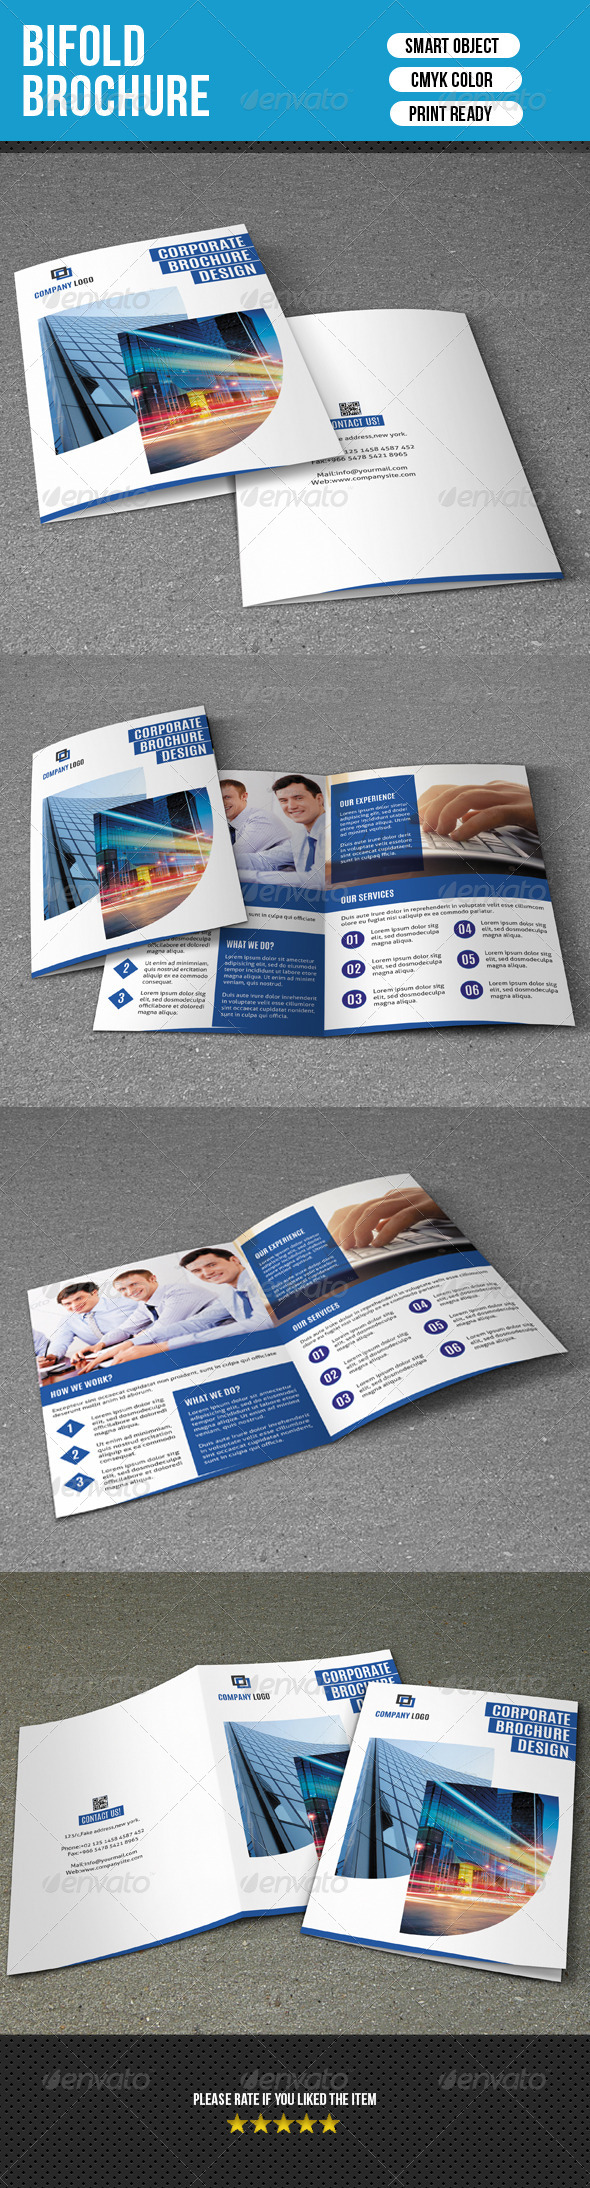 GraphicRiver Bifold Business Brochure-V92 8279140